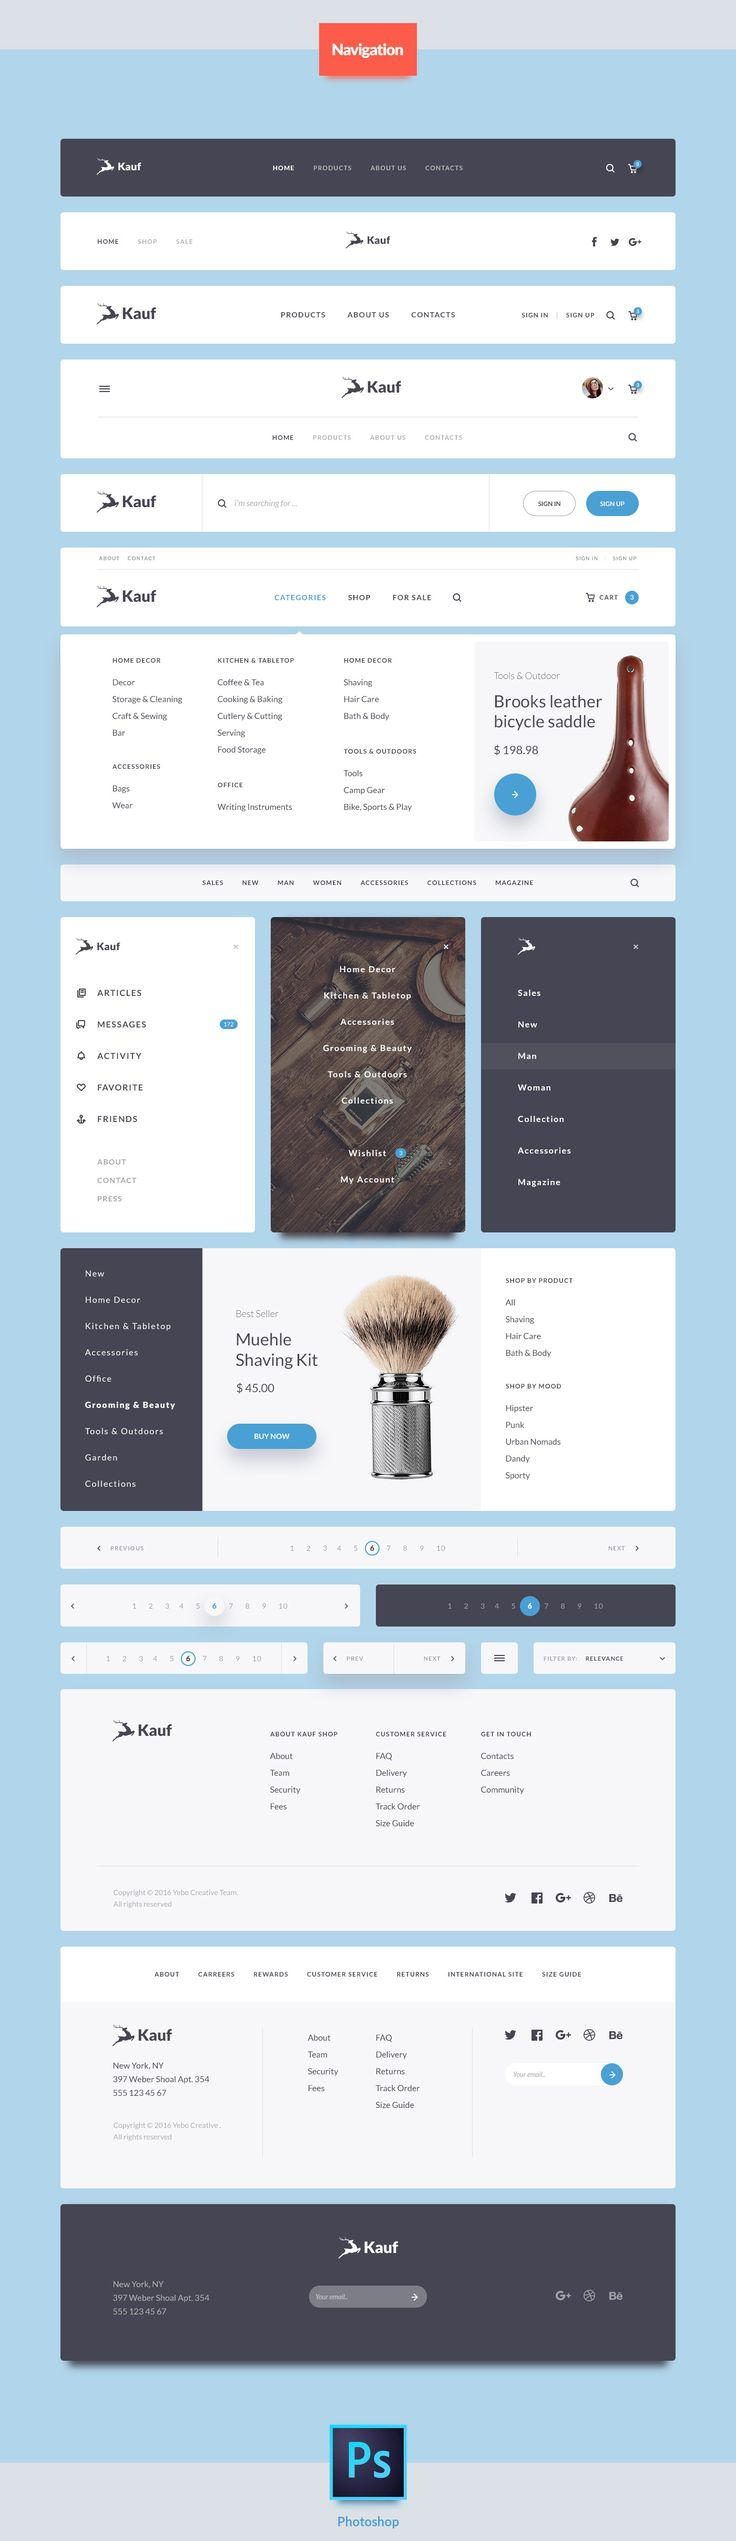 Kauf is a UI Web Kit crafted in Photoshop and designed for help you in your next awesome web project. This pack comes with 200+ design elements vector based and 7 categories (Articles, Ecommerce, Forms, Headers, Navigations, Widgets, Elements) to give a s…